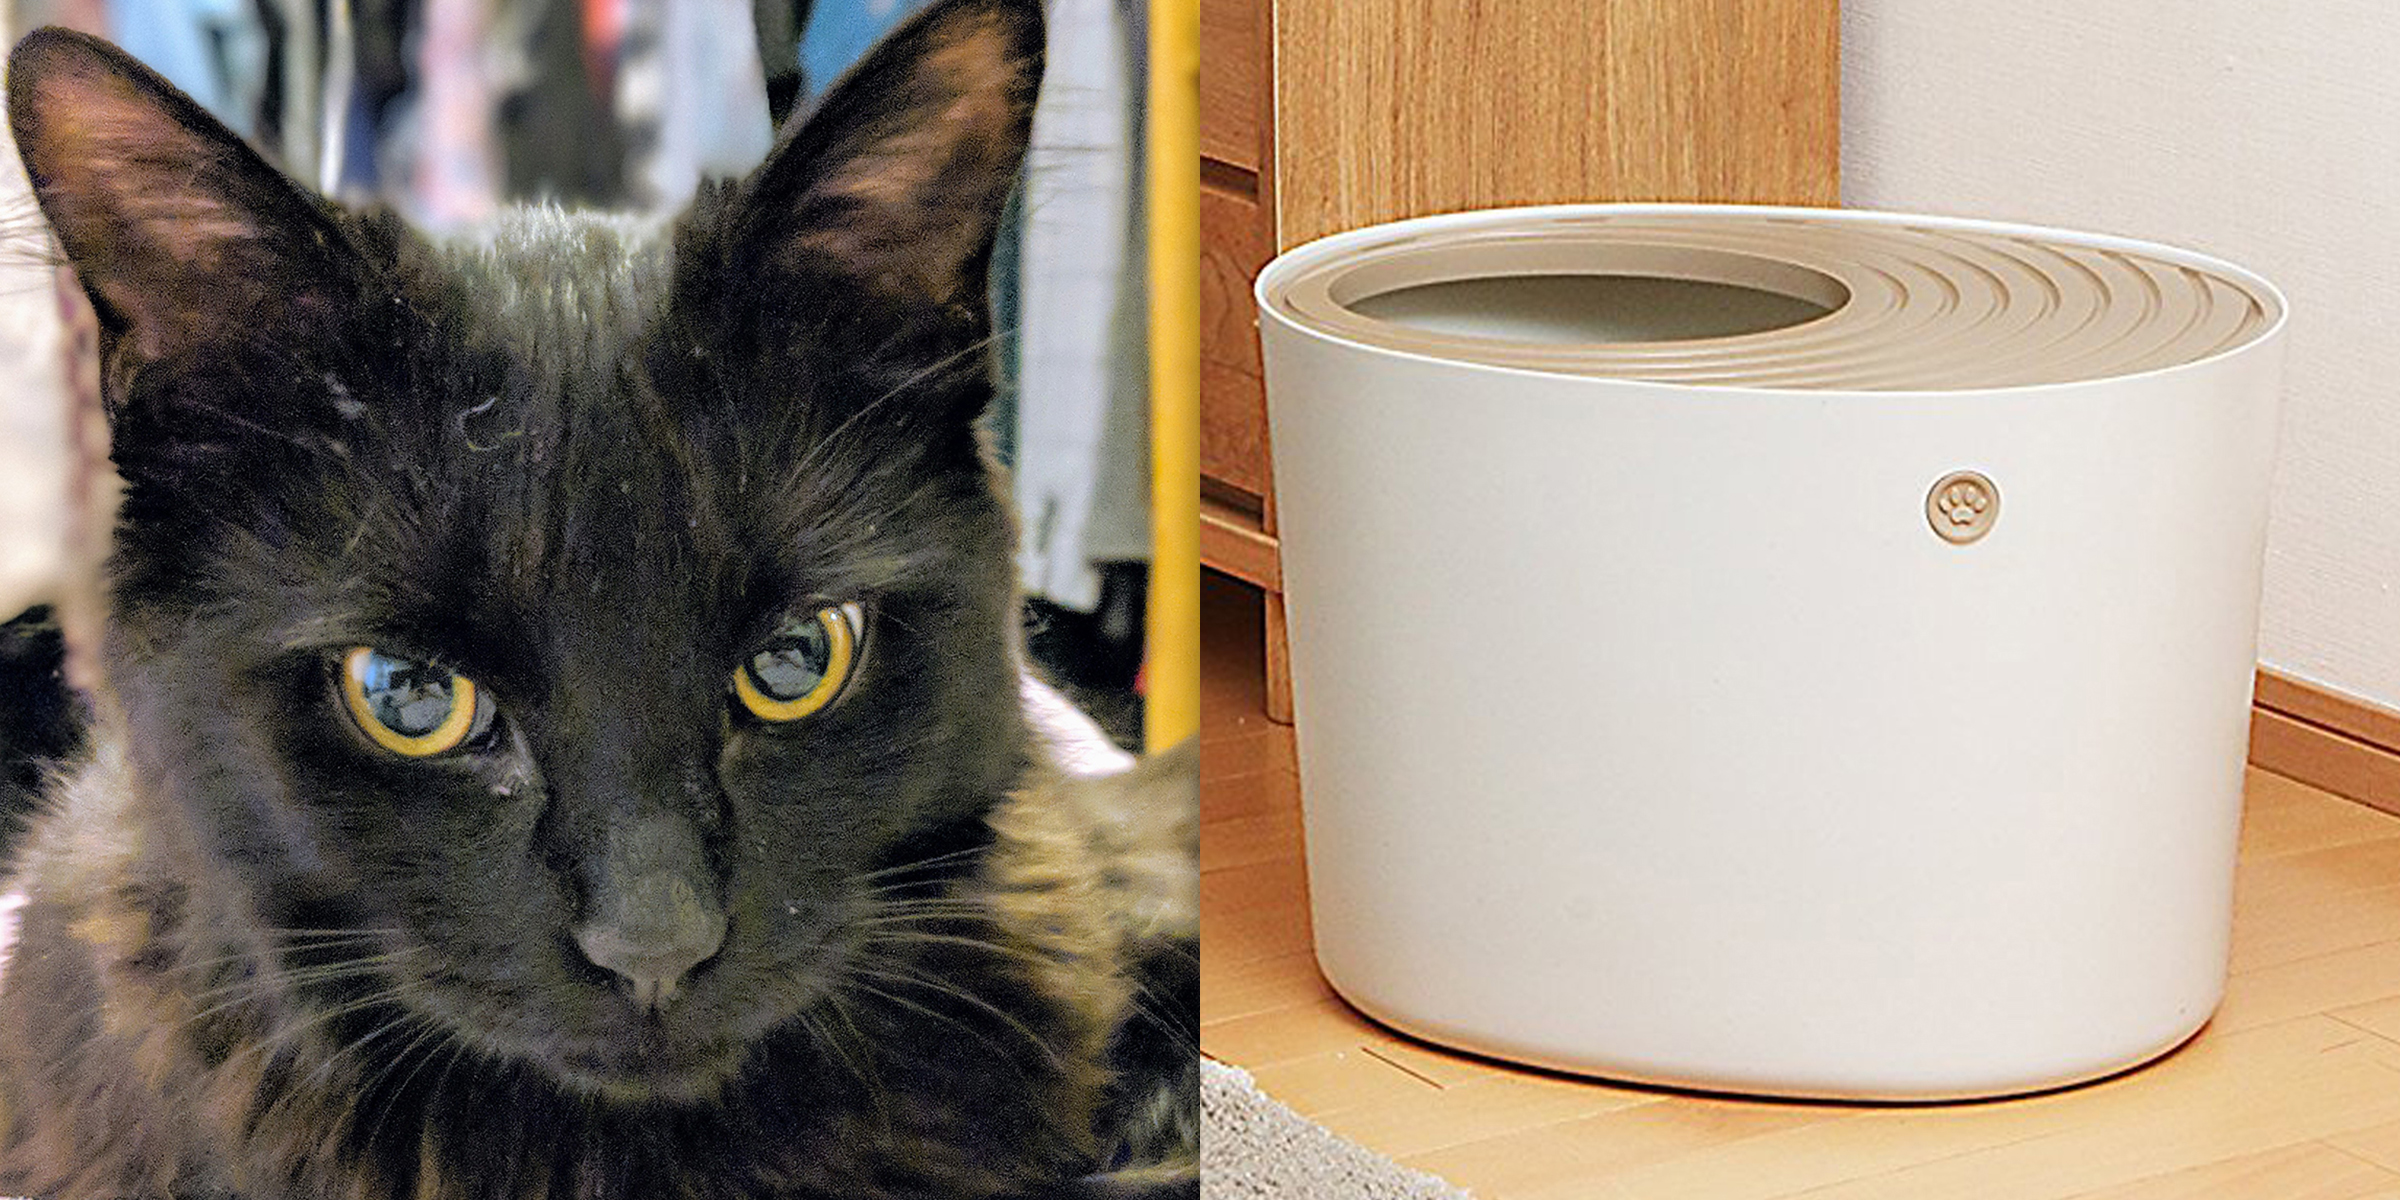 The best cat litter box is a top-entry litter box